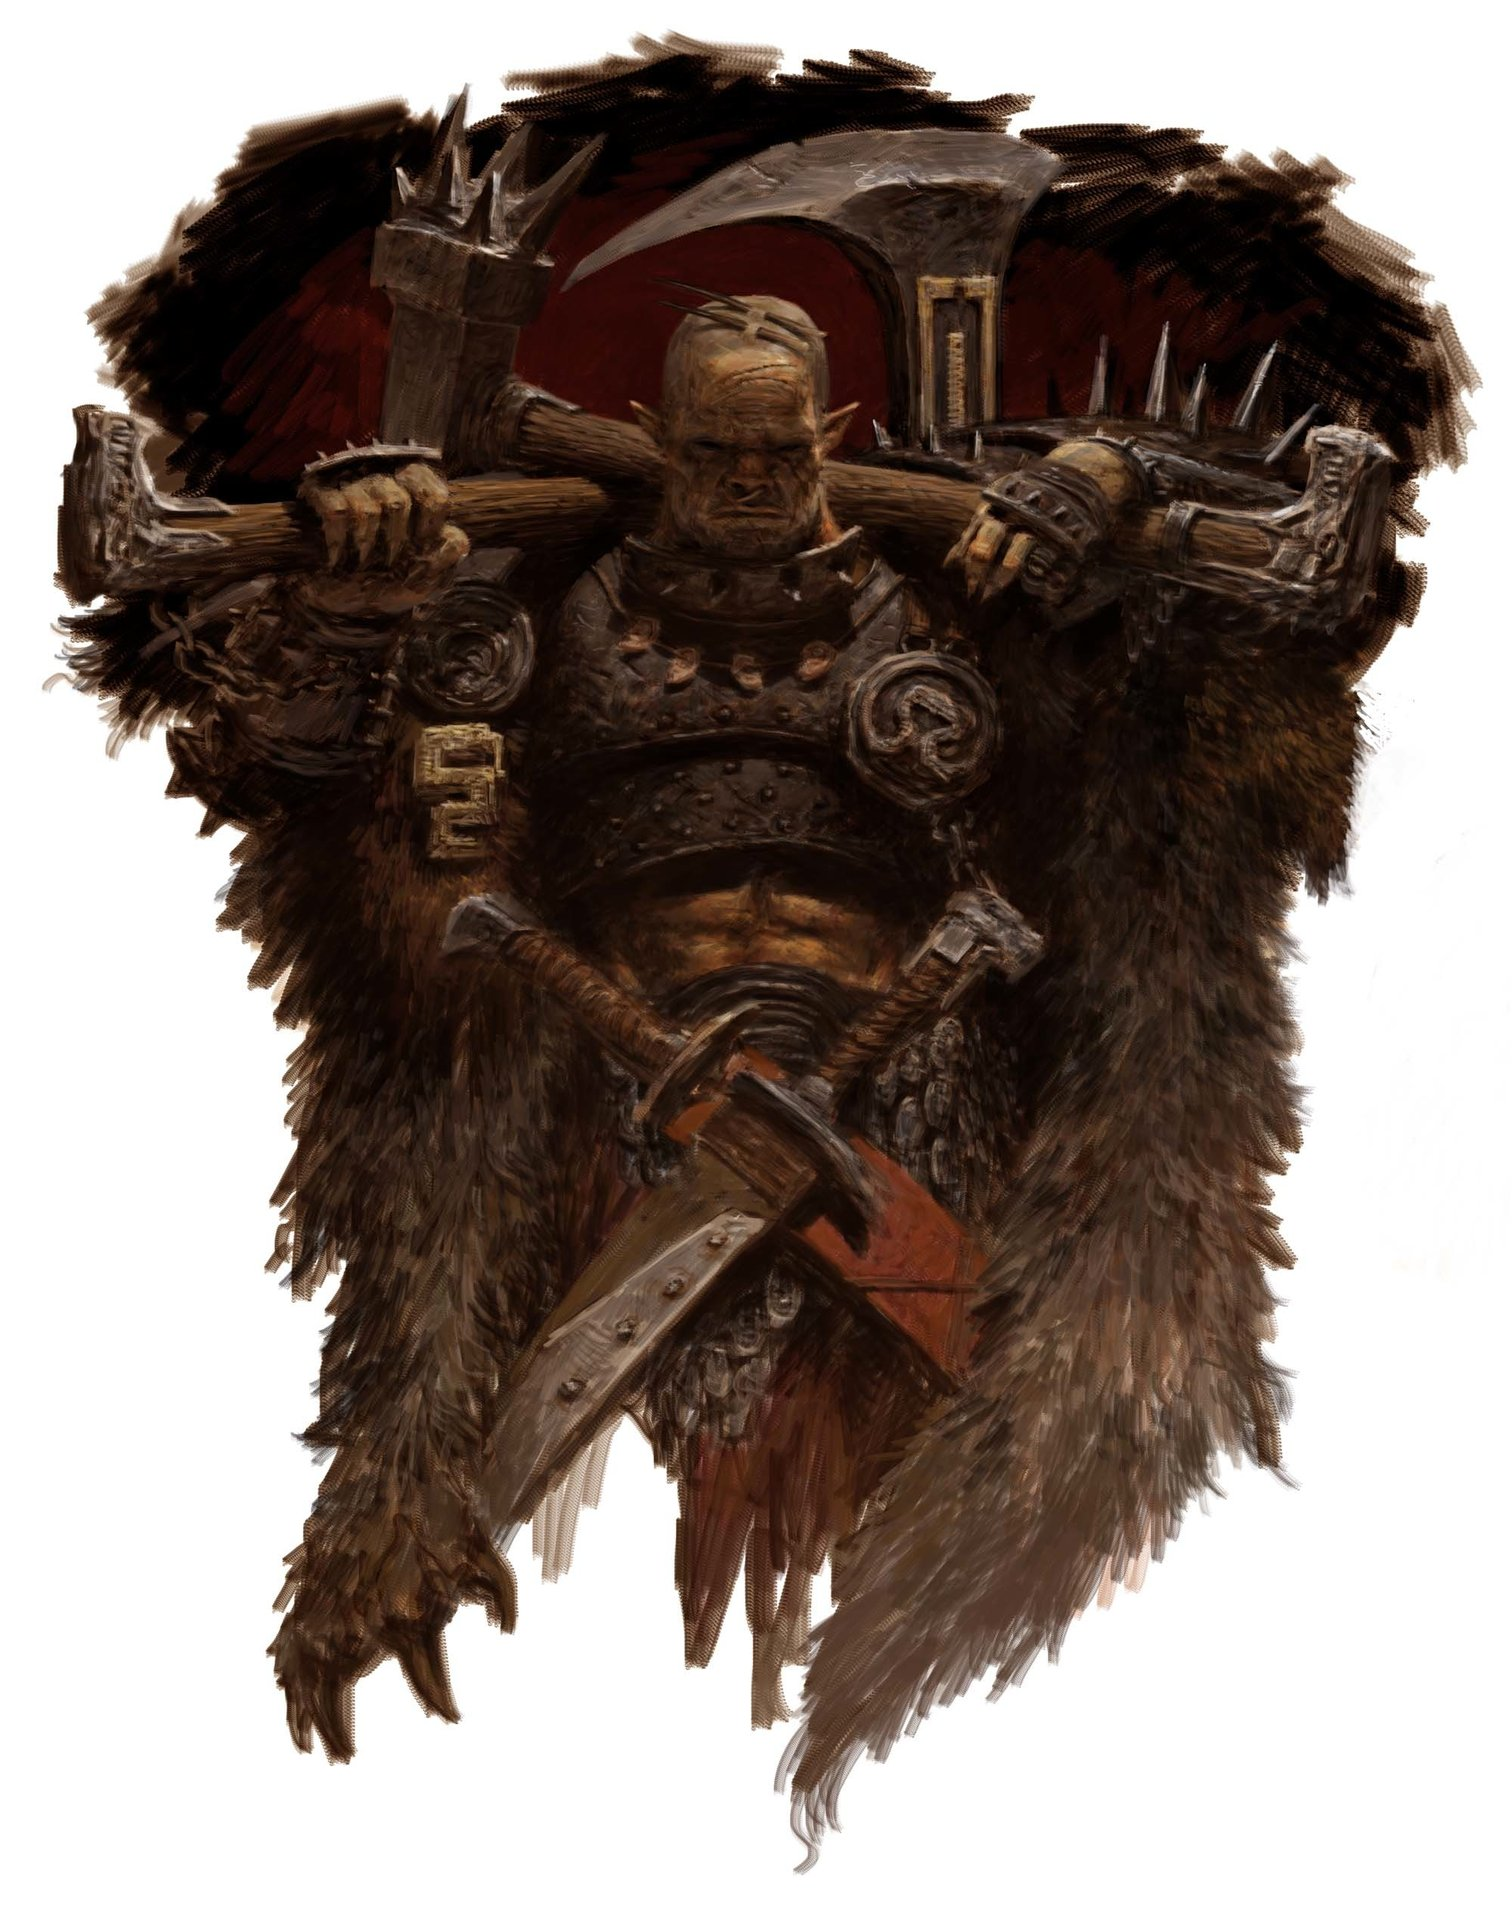 Adrian smith wildman orc hero